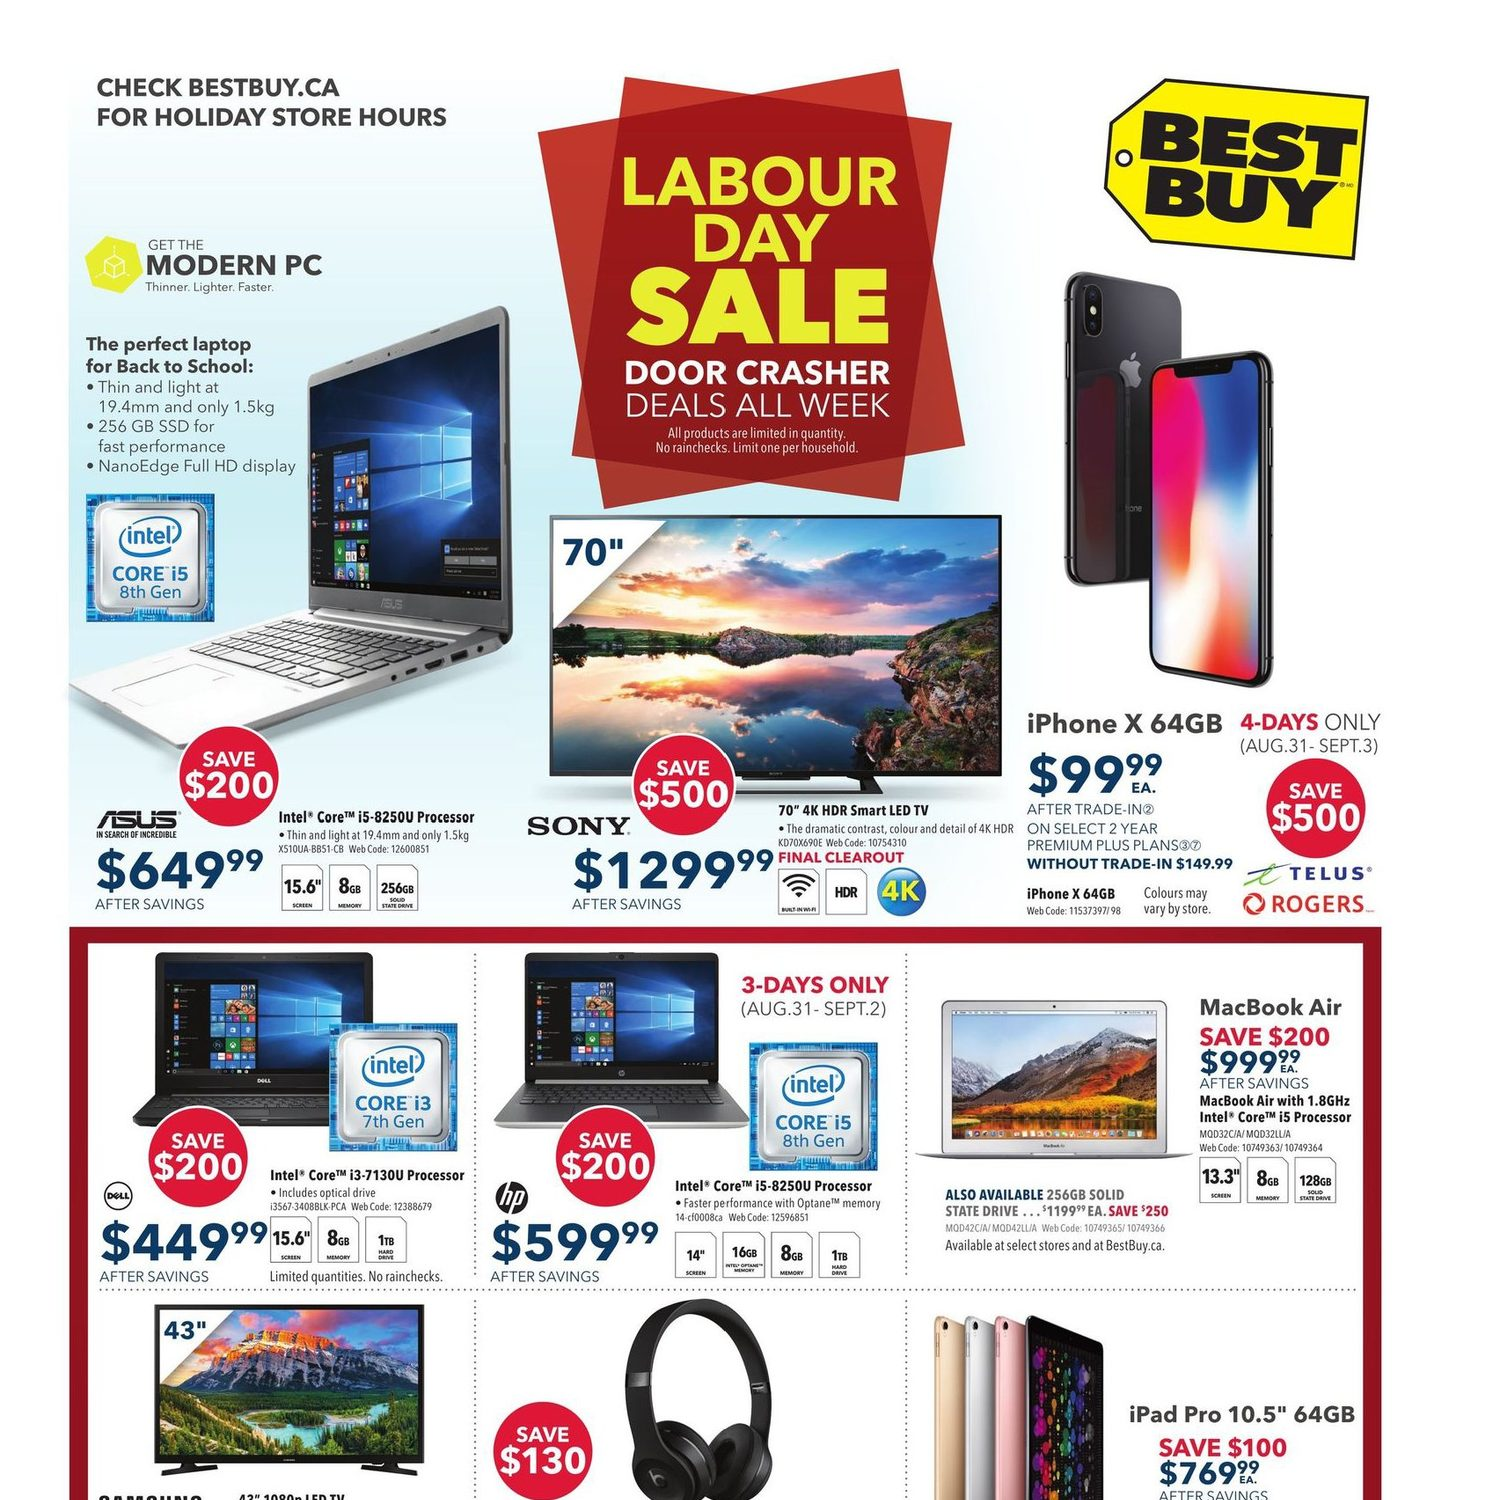 fa0ab5a2b26 Best Buy Weekly Flyer - Weekly - Labour Day Sale - Aug 31 – Sep 6 -  RedFlagDeals.com